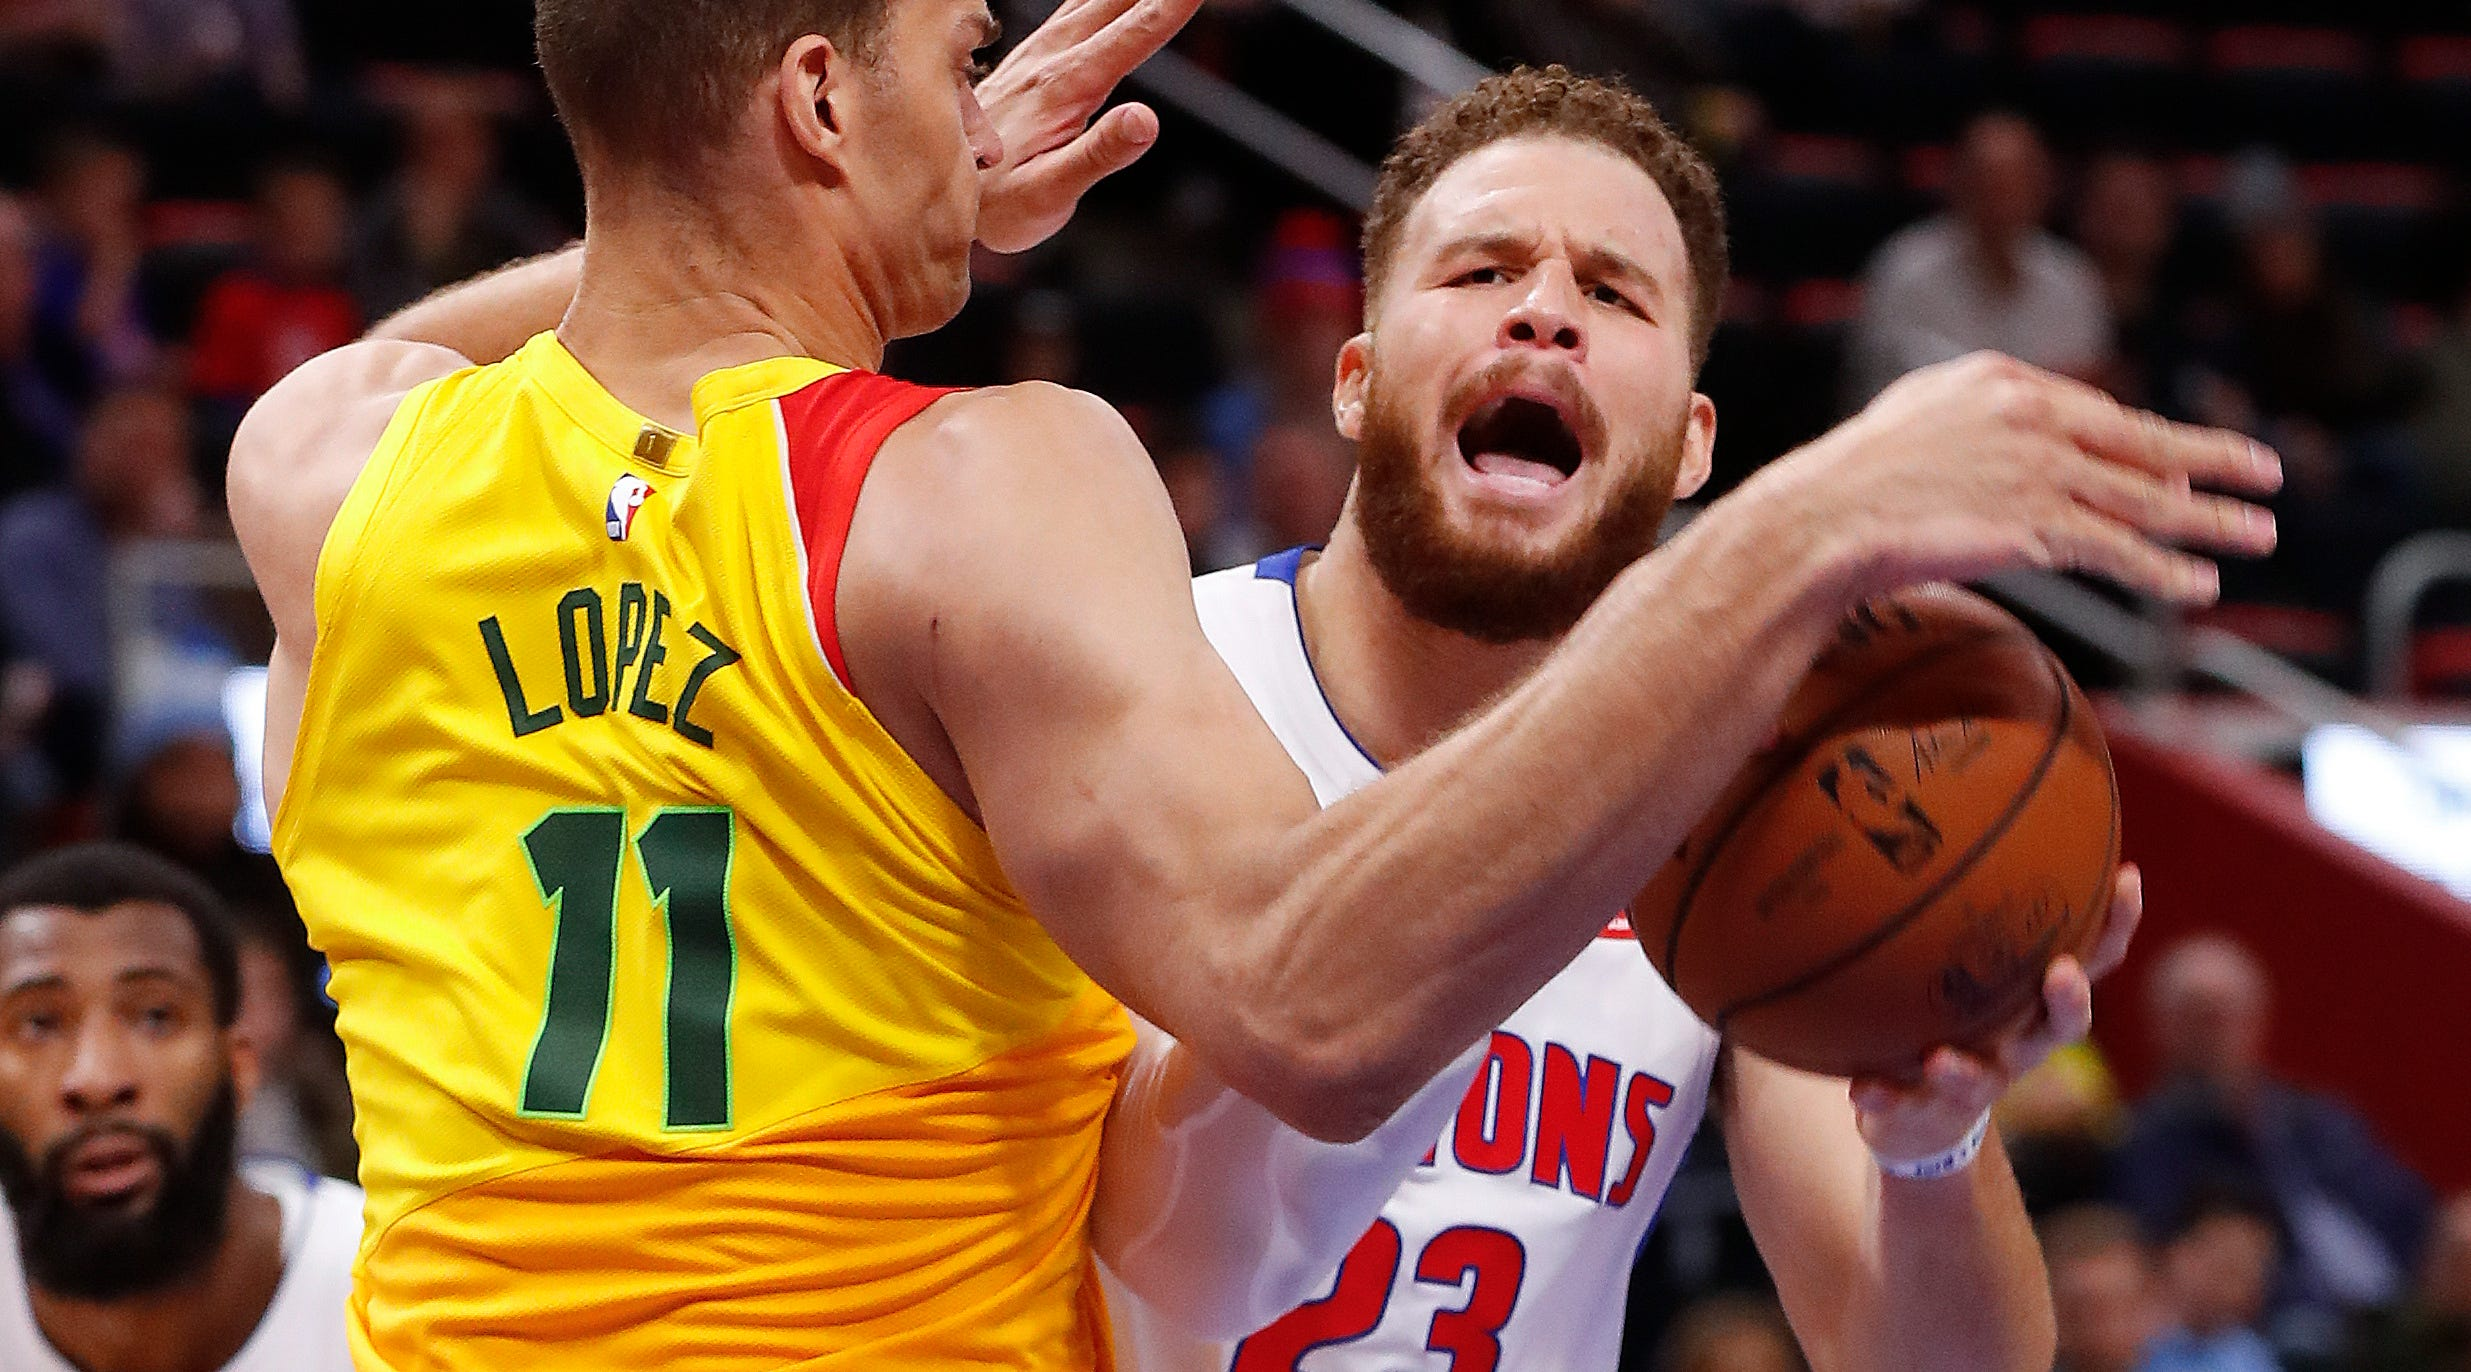 Milwaukee Bucks center Brook Lopez (11) fouls Detroit Pistons forward Blake Griffin (23) in the second half of an NBA basketball game in Detroit, Monday, Dec. 17, 2018.